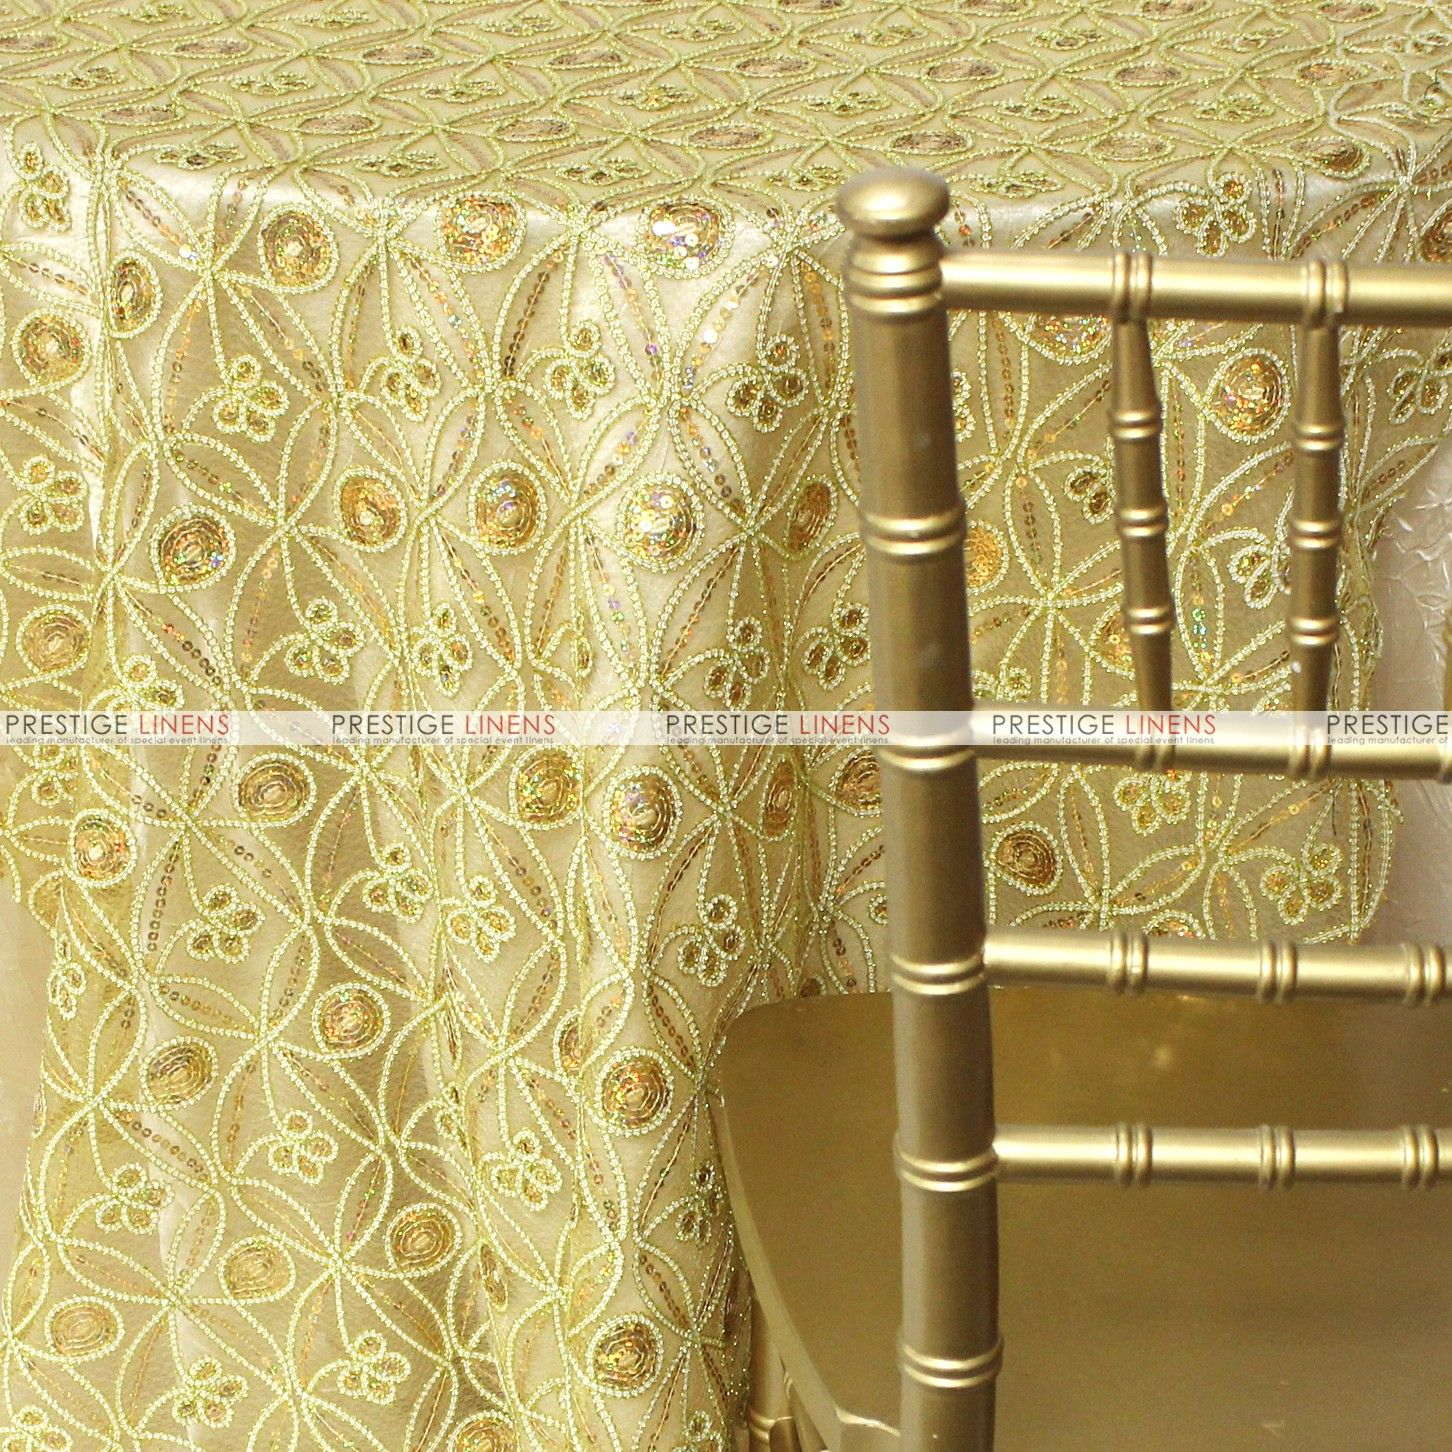 If you are a fan of our #CocoaPaisley fabric, you will adore this upgrade to Cocoa Star. With solid colors and matching #embroidery, this beautiful fabric comes in two #exclusive colors, shown here in Gold, and will shine at any event you have coming up. #wedding #Linens #Weddingdecor #colors #Fall #Weddingseason #prestigelinens